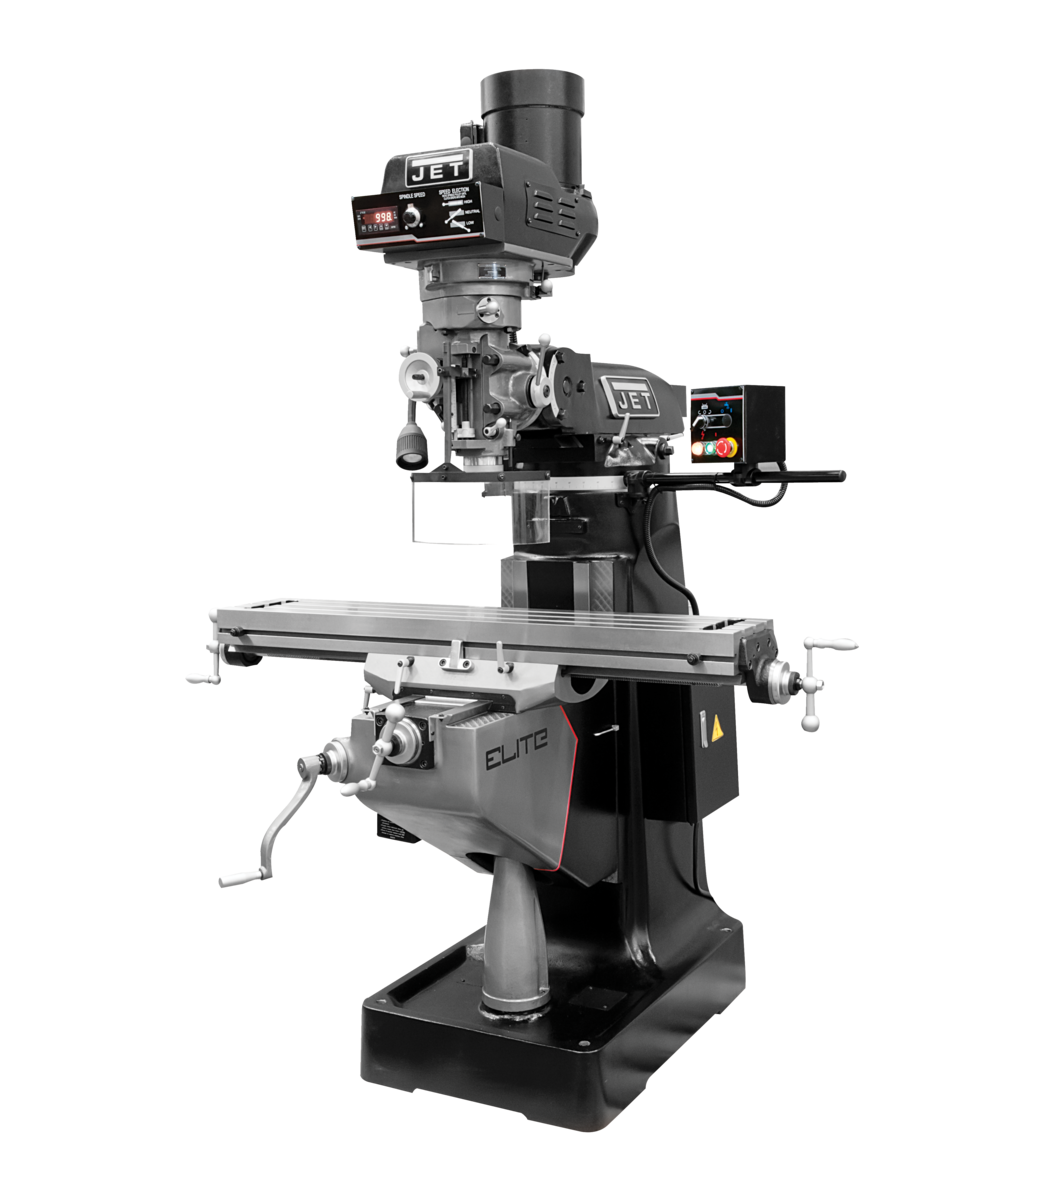 EVS-949 Mill with 3-Axis Newall DP700 (Quill) DRO and X, Y, Z-Axis JET Powerfeeds